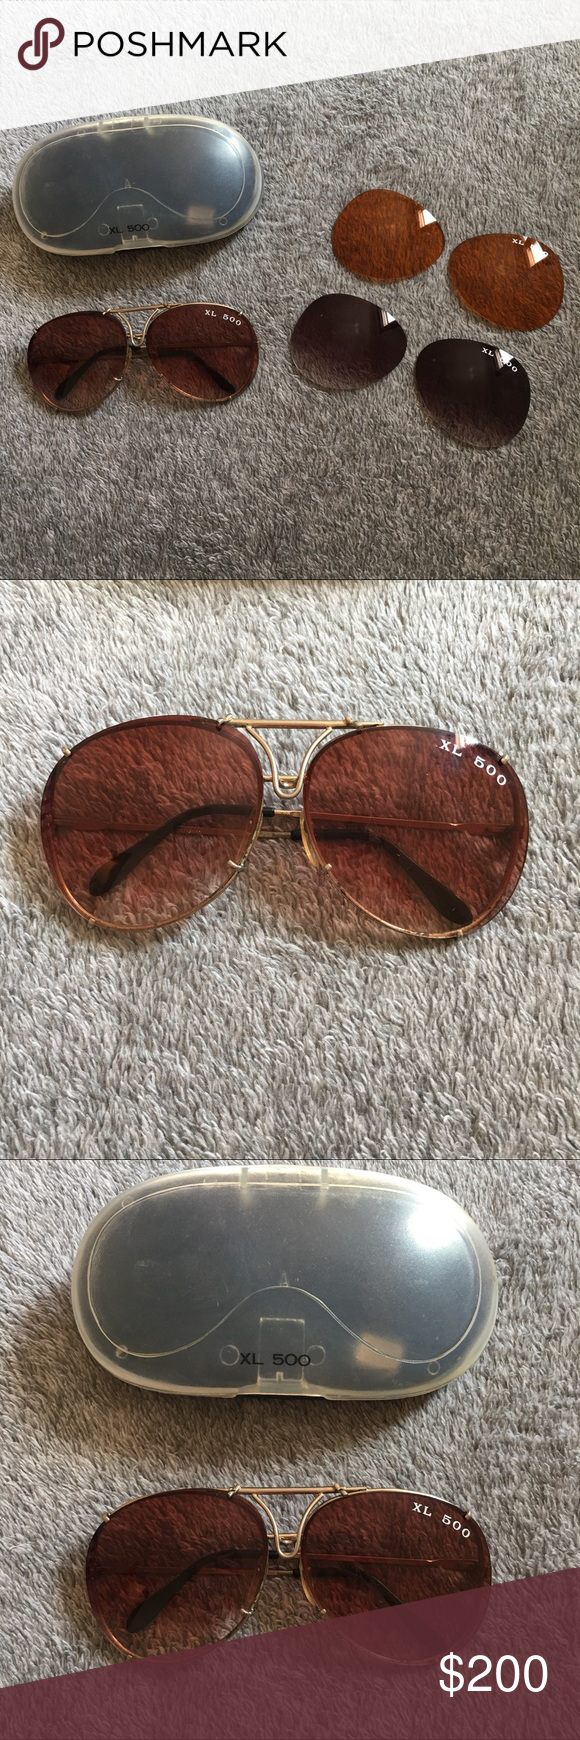 92a7fbf6d0bce Vintage Ray Ban XL 500 Sunglasses 1980 s Ray Ban Sunglasses • 3 Sets of  Interchangeable Lenses • Unisex Ray-Ban Accessories Sunglasses